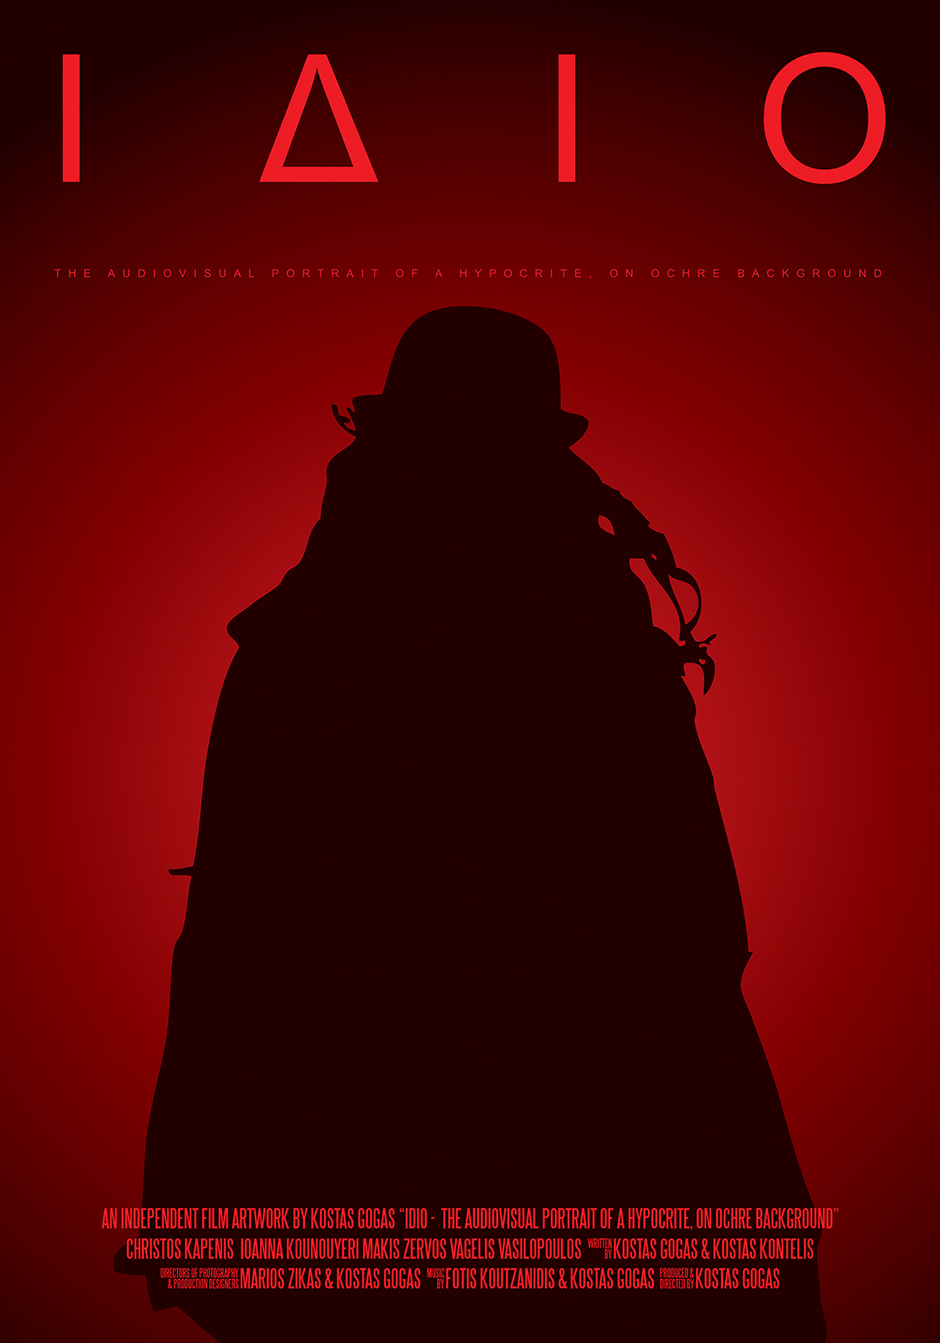 Second Official Poster for Kostas Gogas film 'IDIO - the Audiovisual Portrait of a Hypocrite' featuring the silhouette of the Jeremy character on a red background.